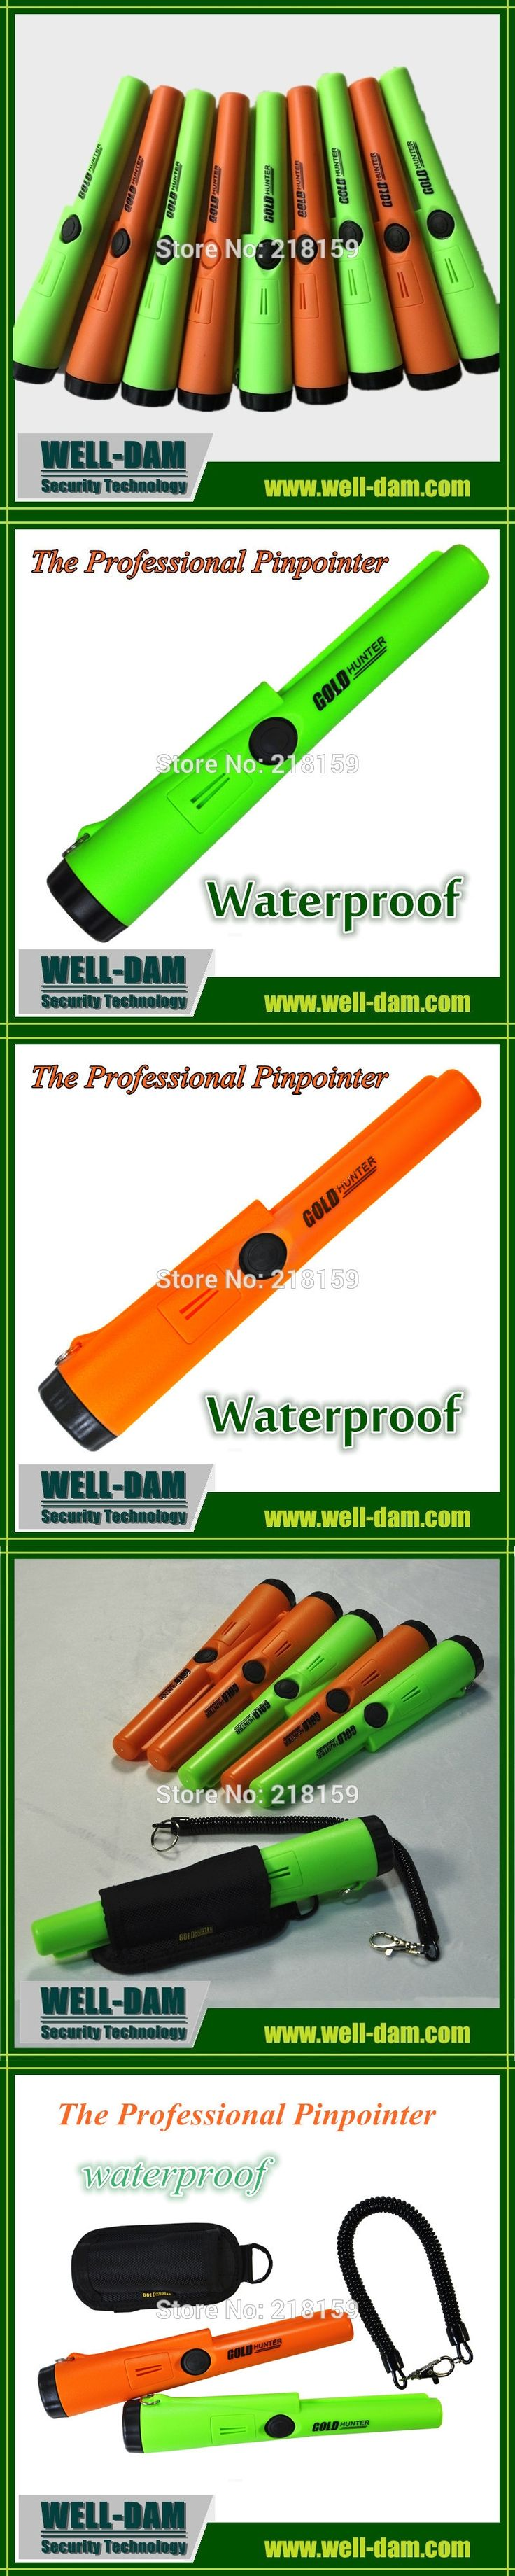 Gold Hunter AT - Waterproof propointer Metal Detector Pinpointing Same Style Gold Detector Static Alarm with Bracelet